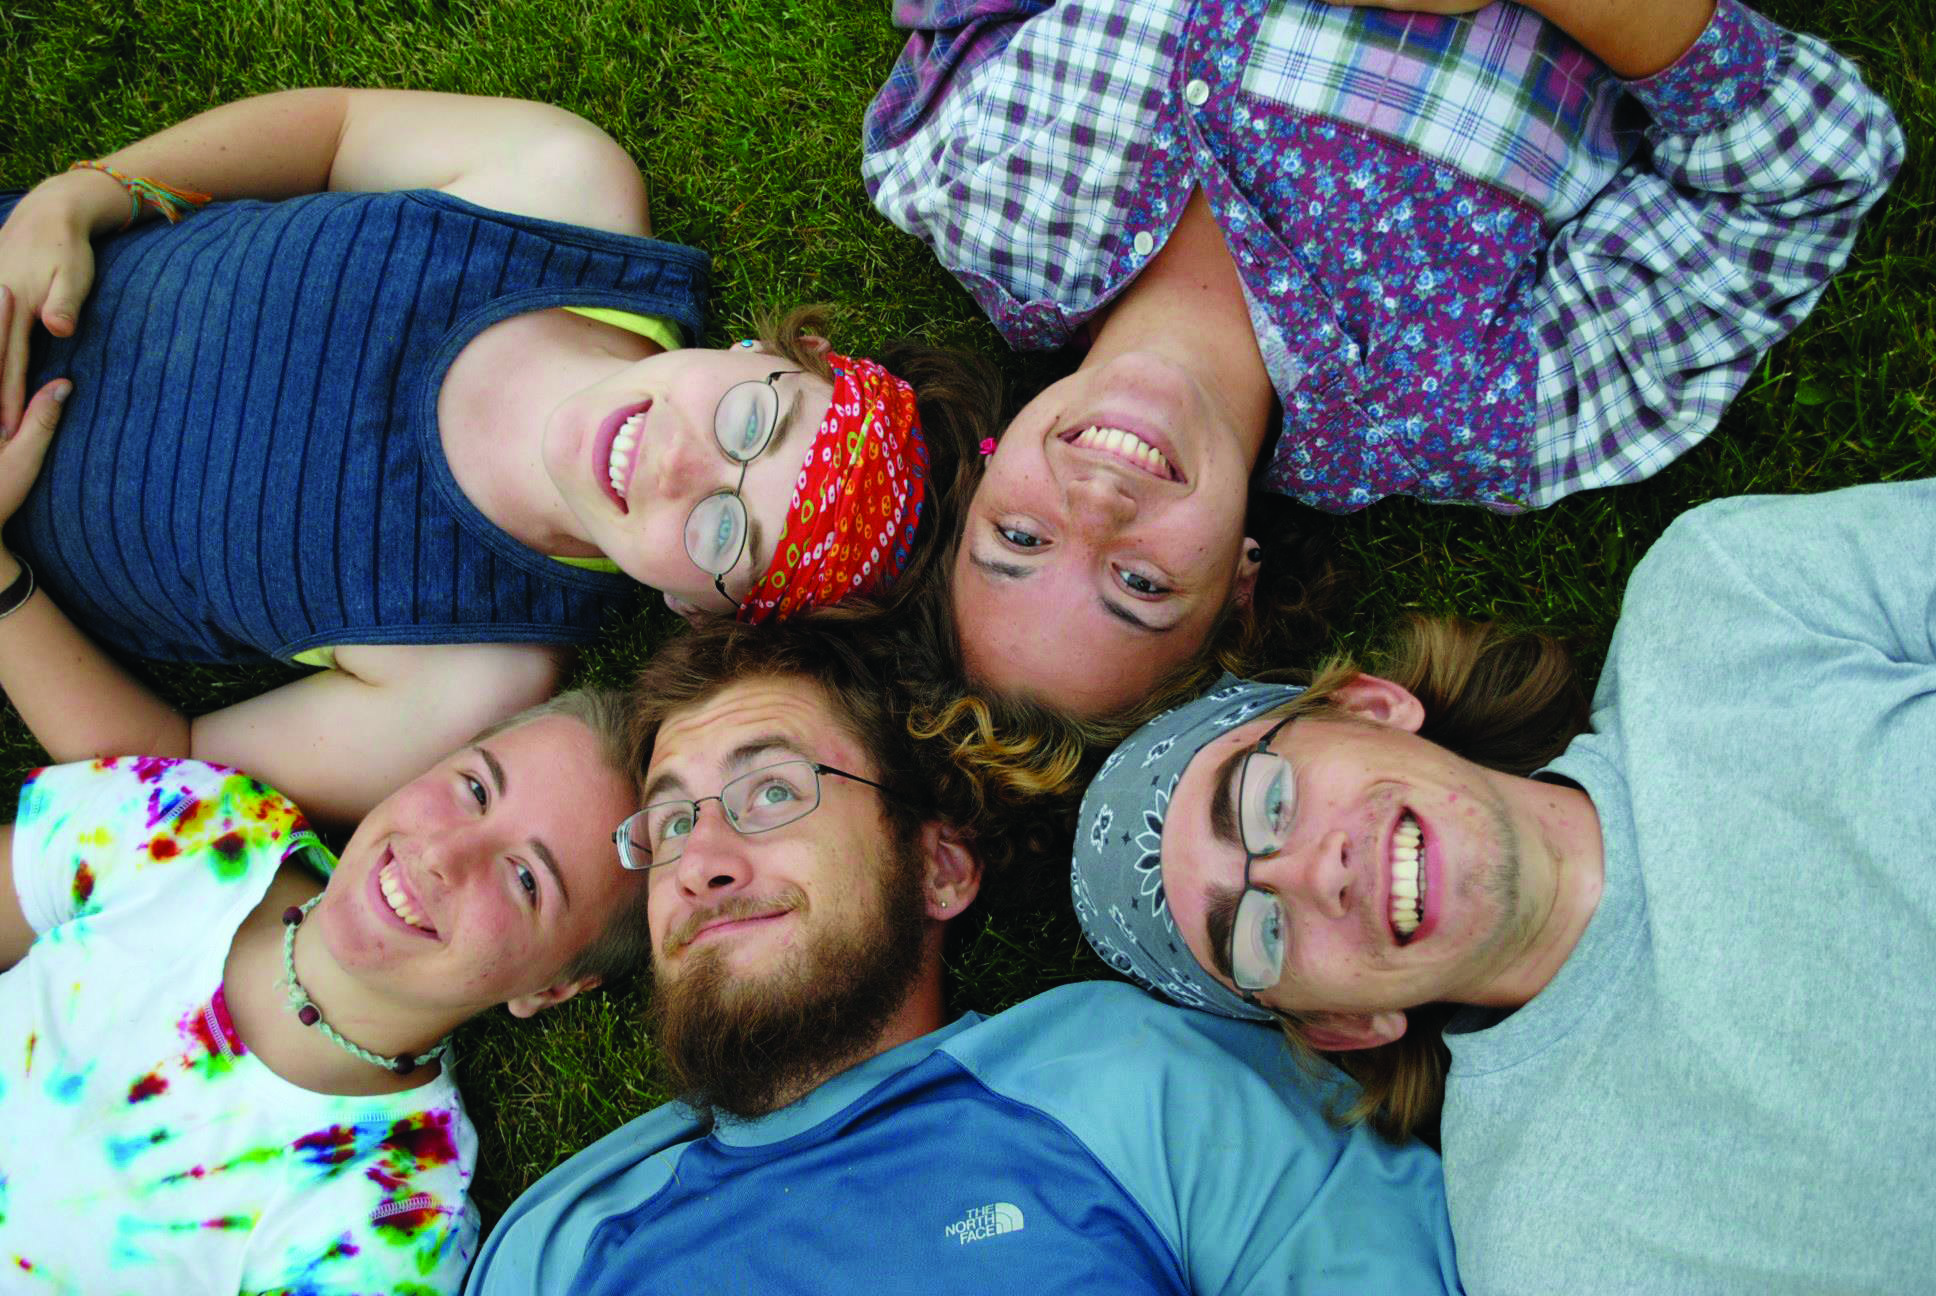 Students lay on grass heads together in Oregon